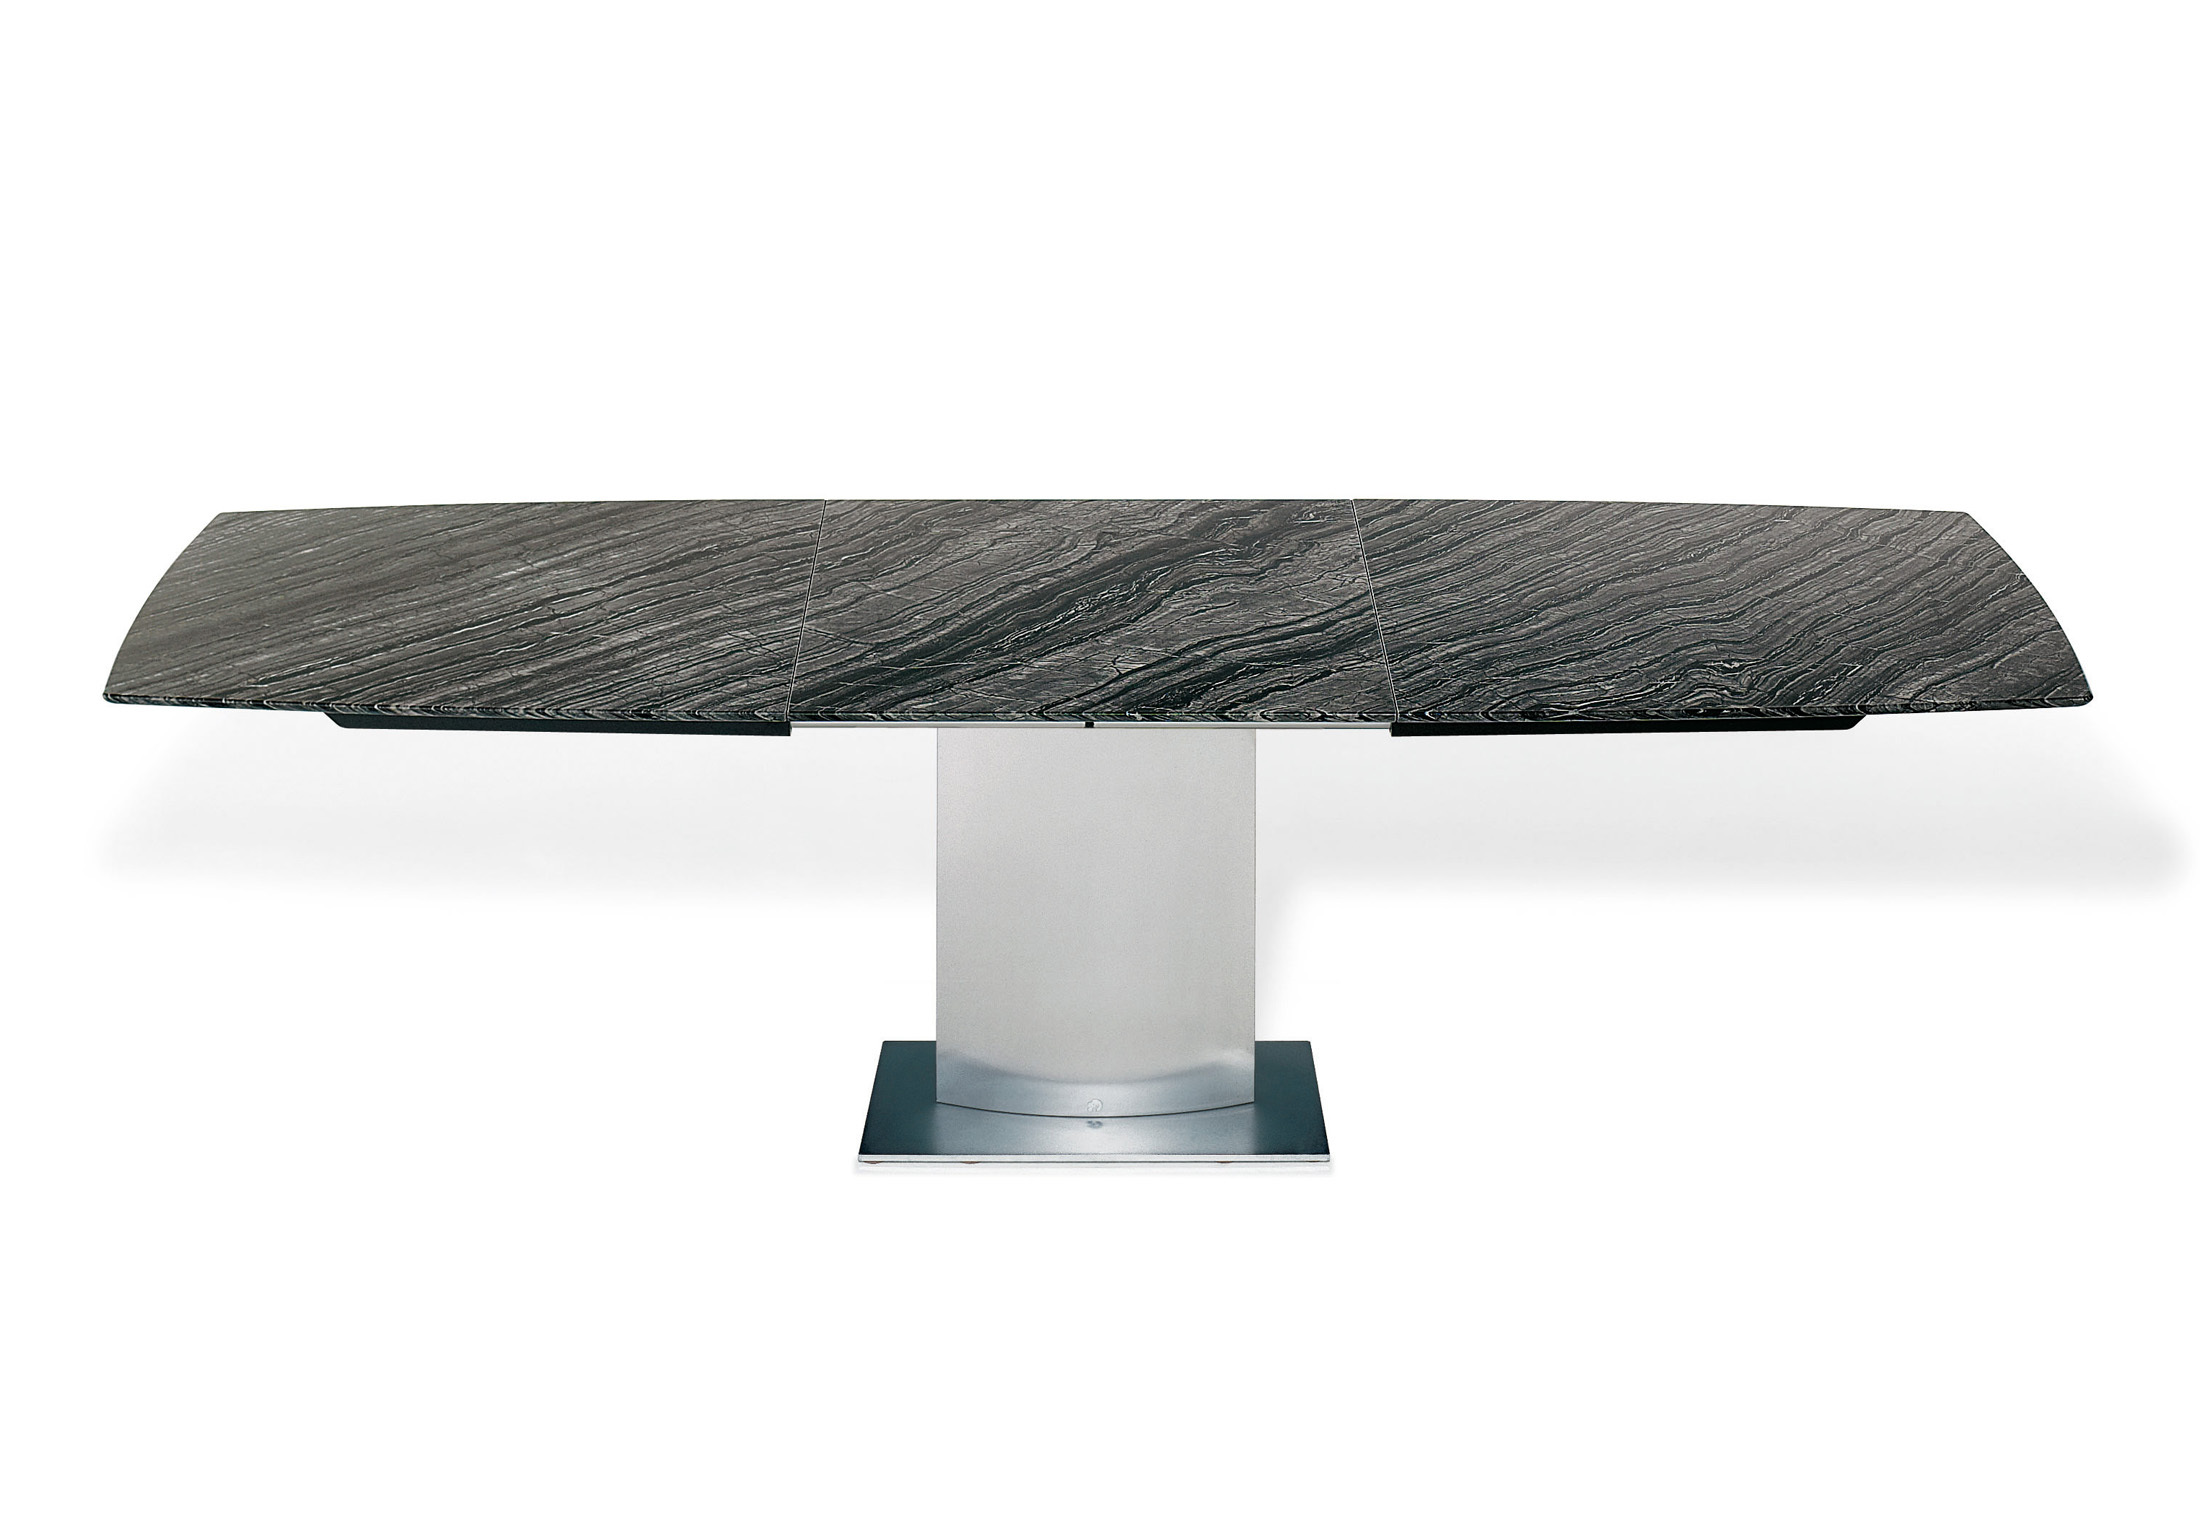 Surprising 1224 Adler Ii Stone By Draenert Stylepark Gmtry Best Dining Table And Chair Ideas Images Gmtryco